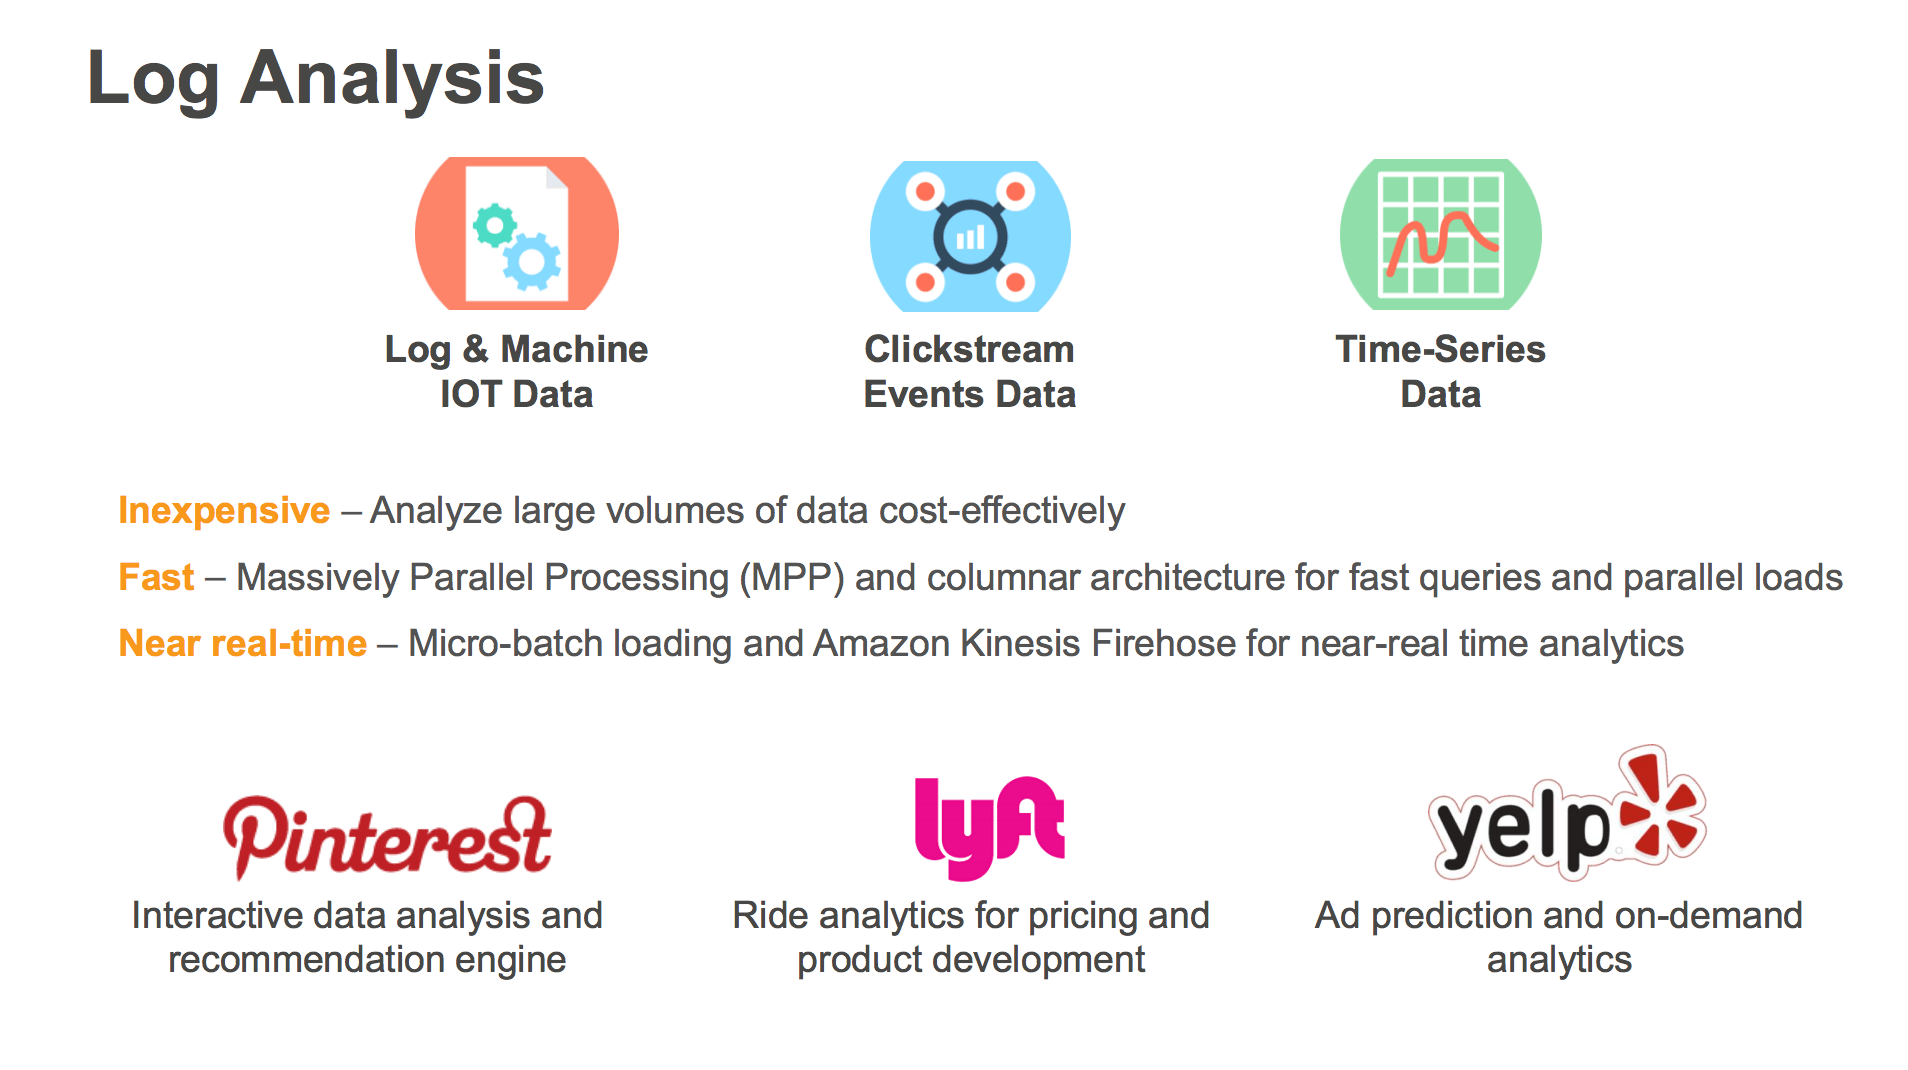 Amazon Redshift can be used to collect, store, process & analyze data for a much lower cost than previous generations of data warehouses